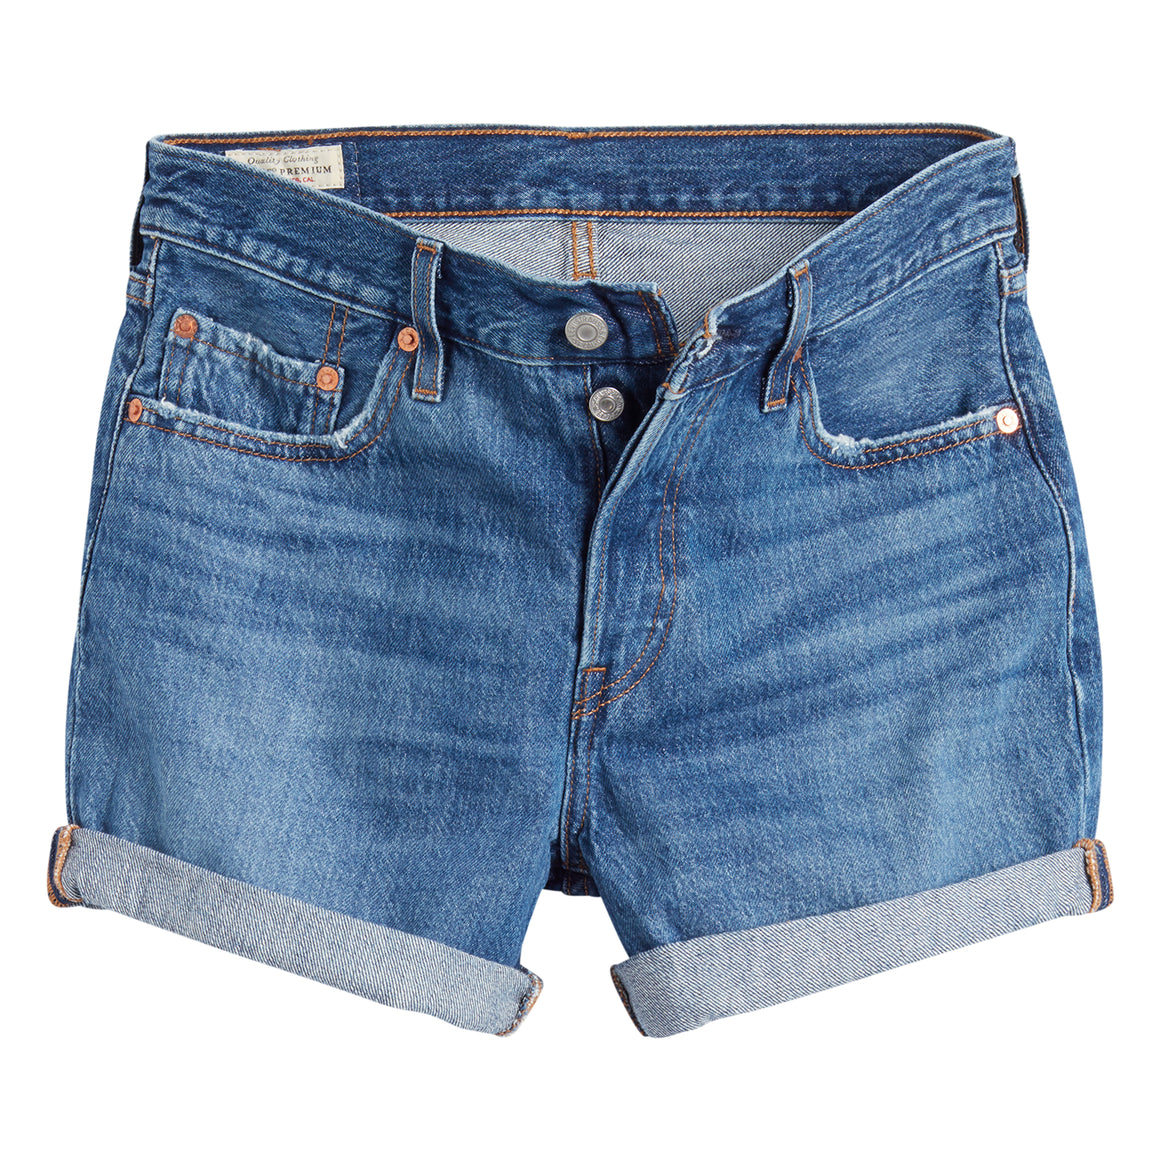 501 Short for Women in Indigo